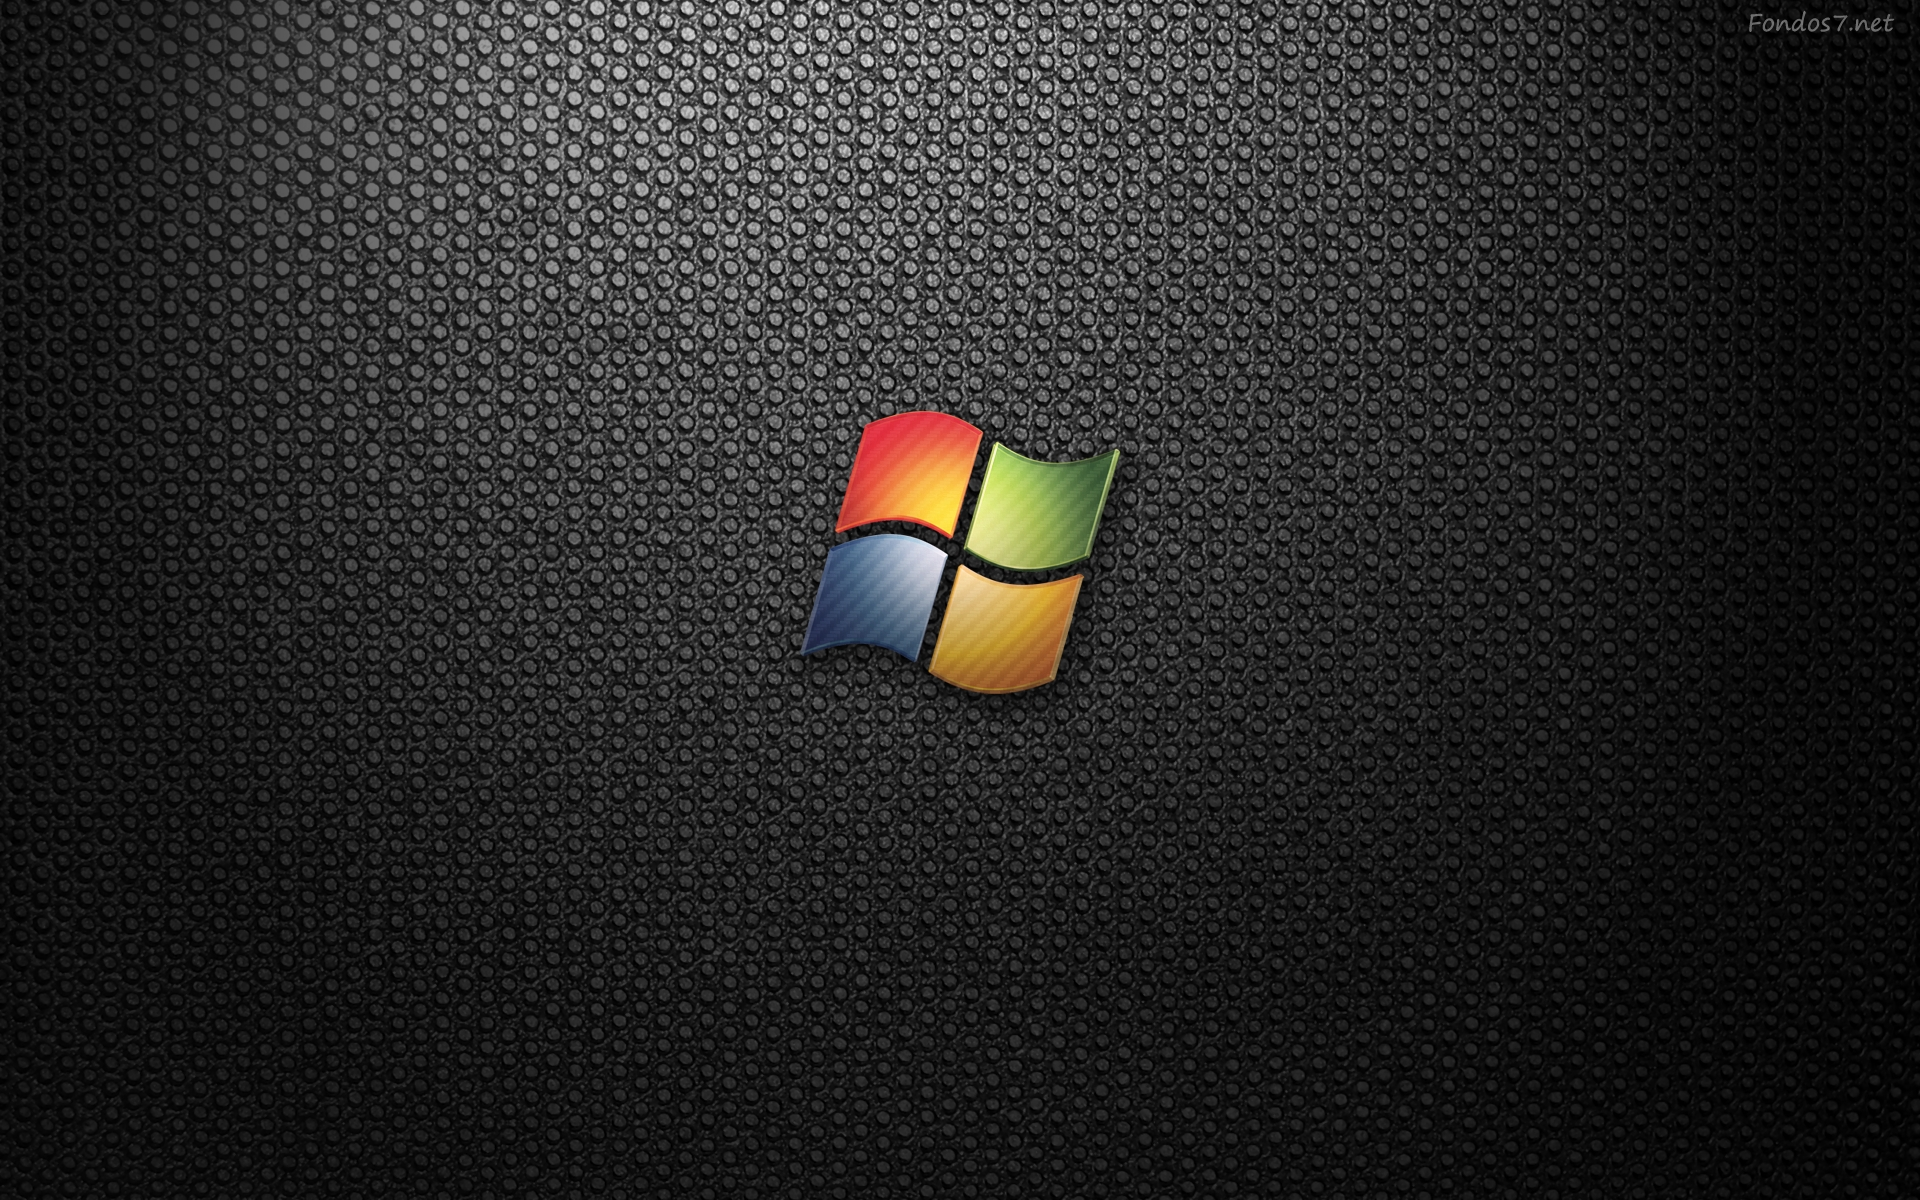 metal seven windows wallpaper widescreen wallpapers 1920x1200 fondos7 1920x1200